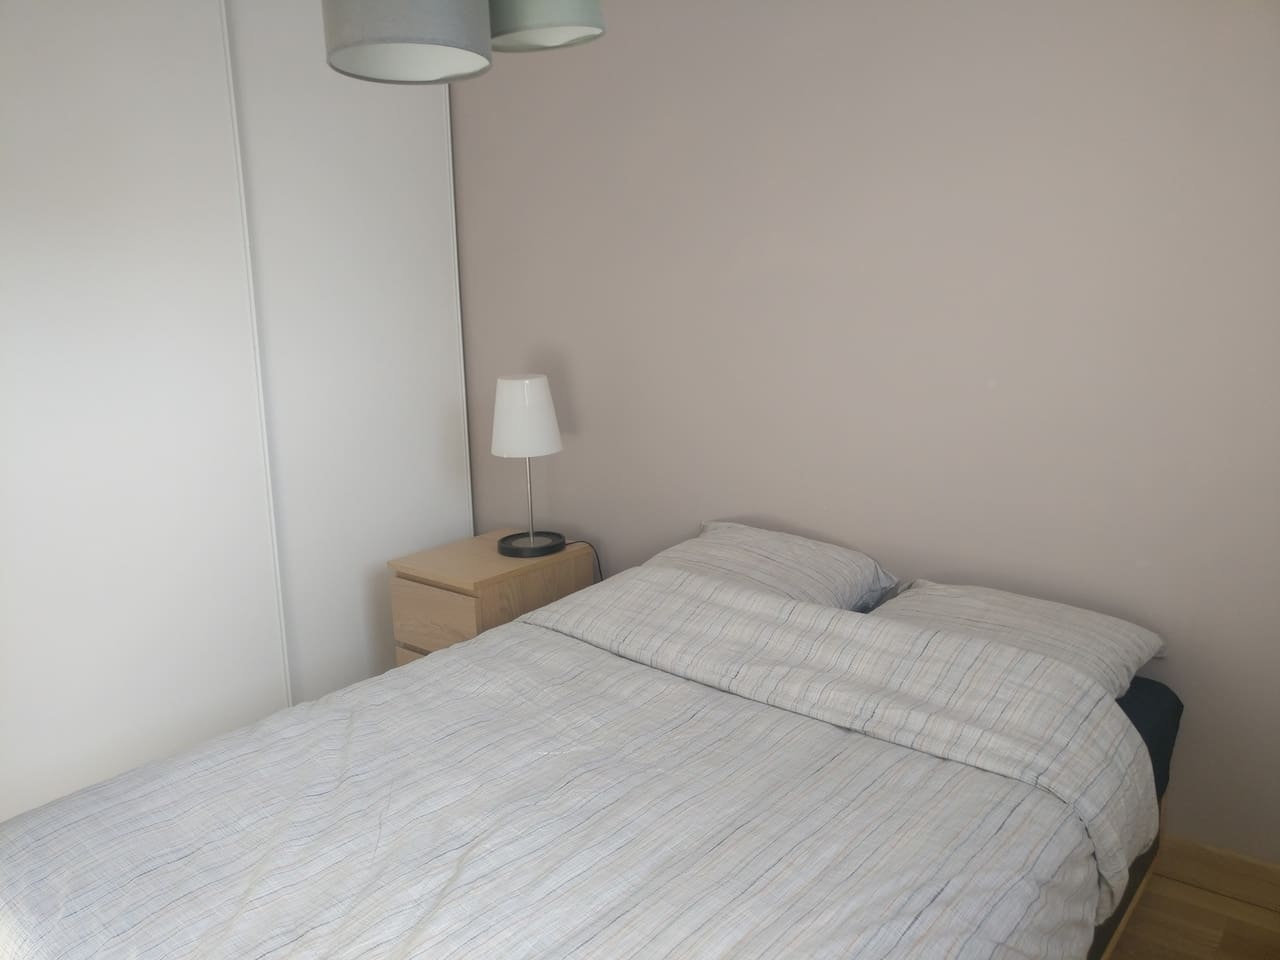 Chambre Au Calme Eysines Flats For Rent In Eysines Aquitaine